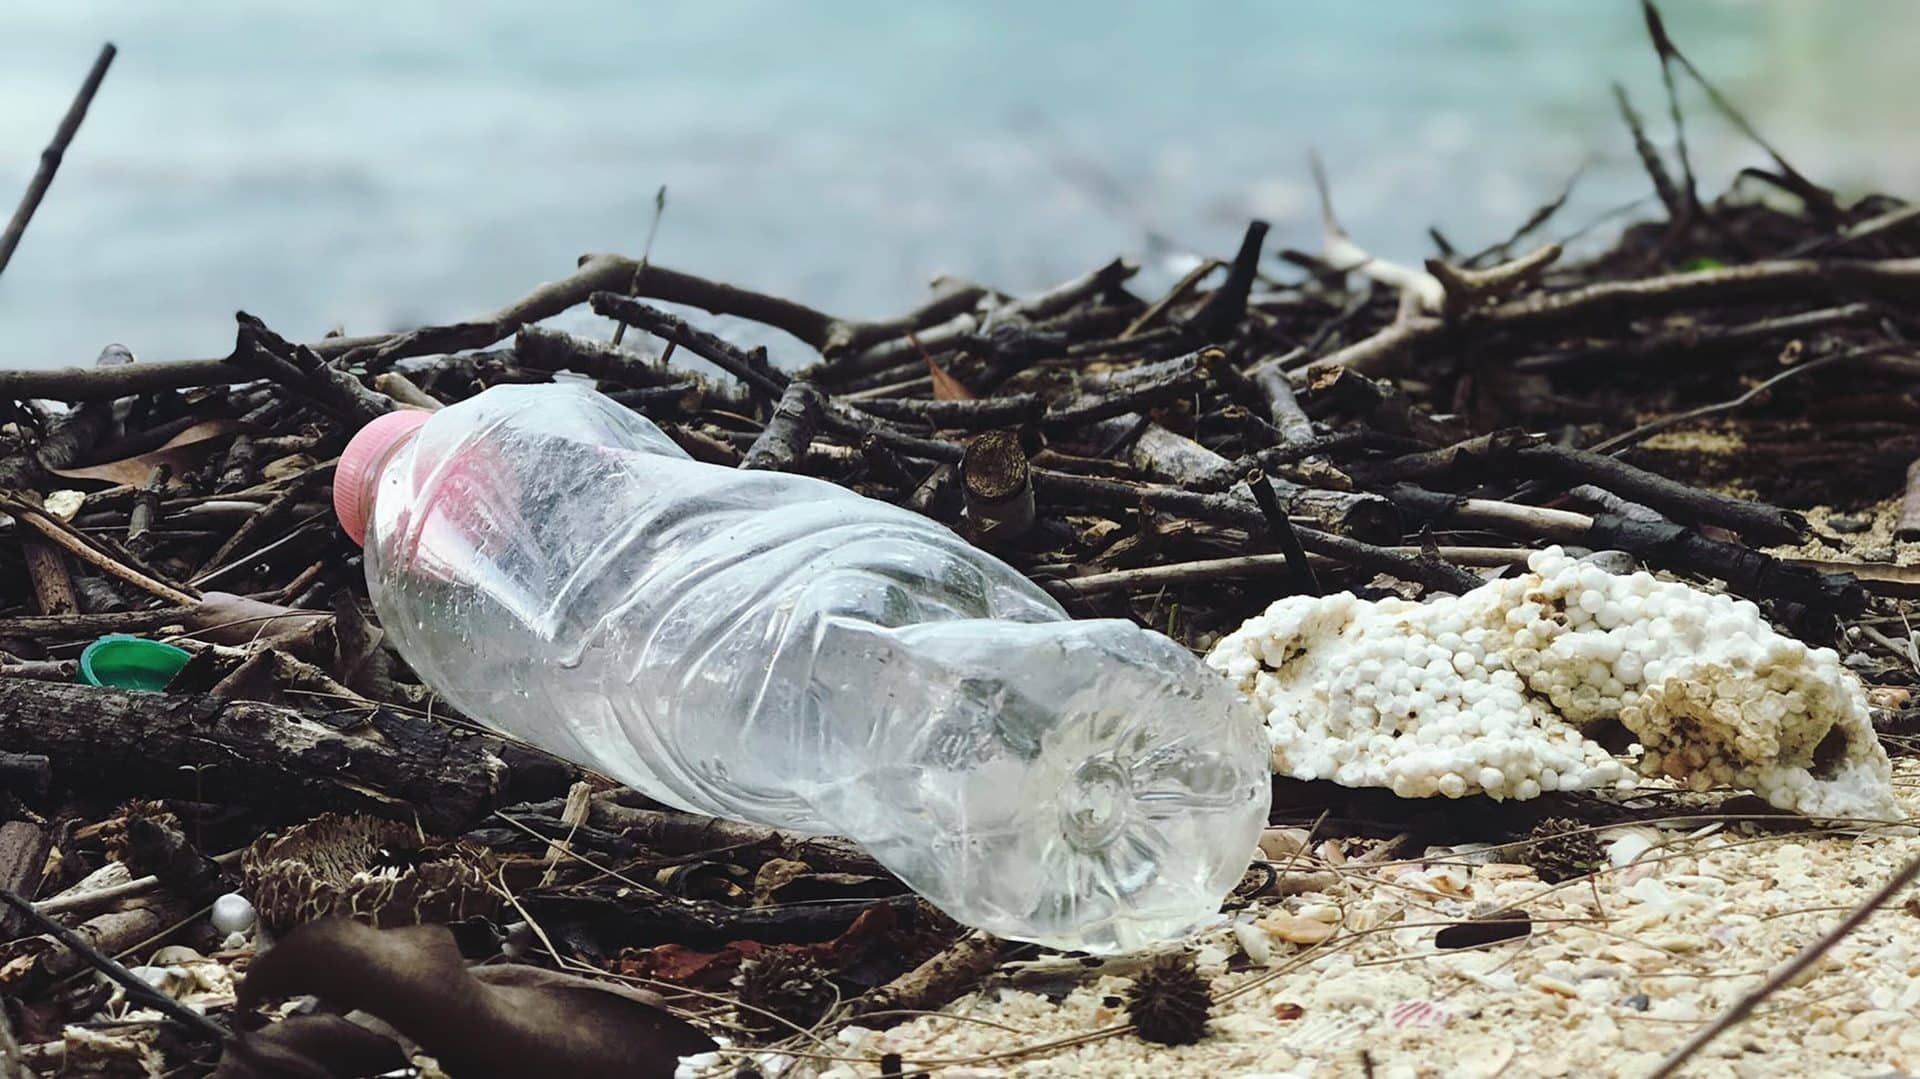 Environment ministry launches awareness campaign on Single Use plastics